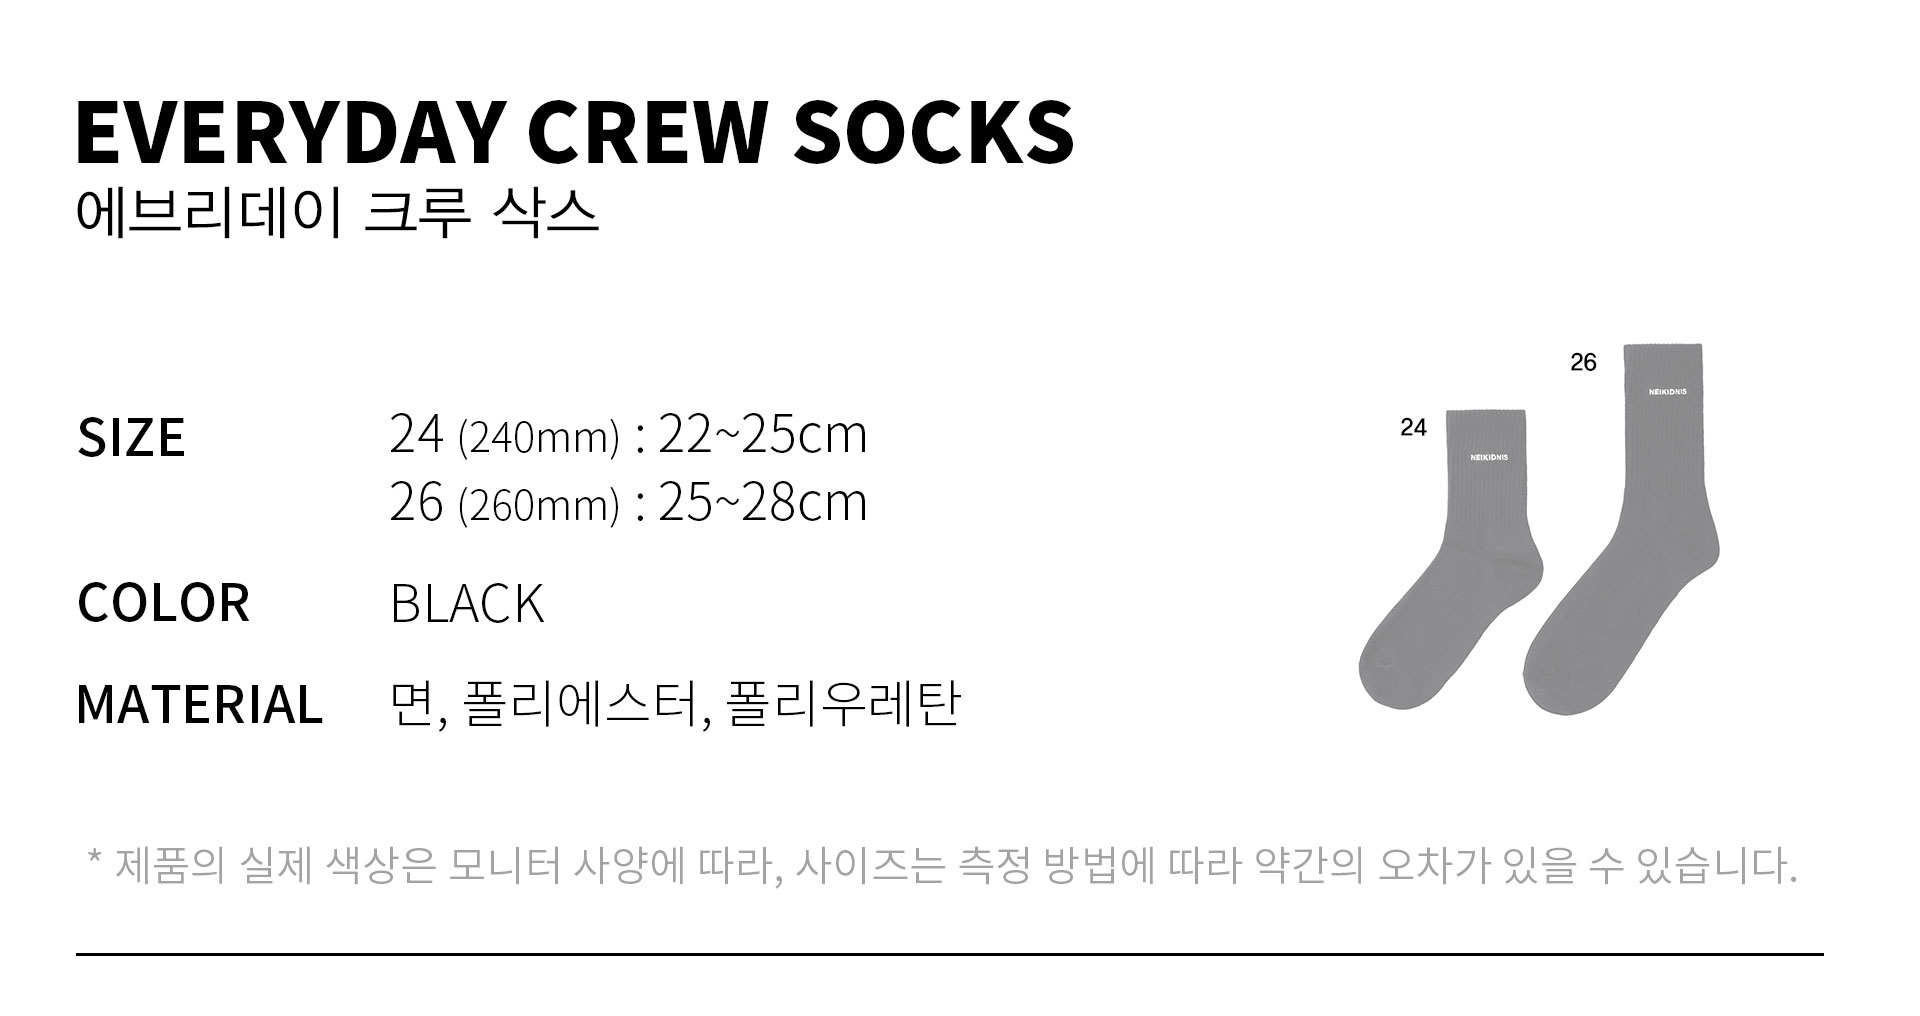 네이키드니스(NEIKIDNIS) EVERYDAY CREW SOCKS / BLACK (3PACK)